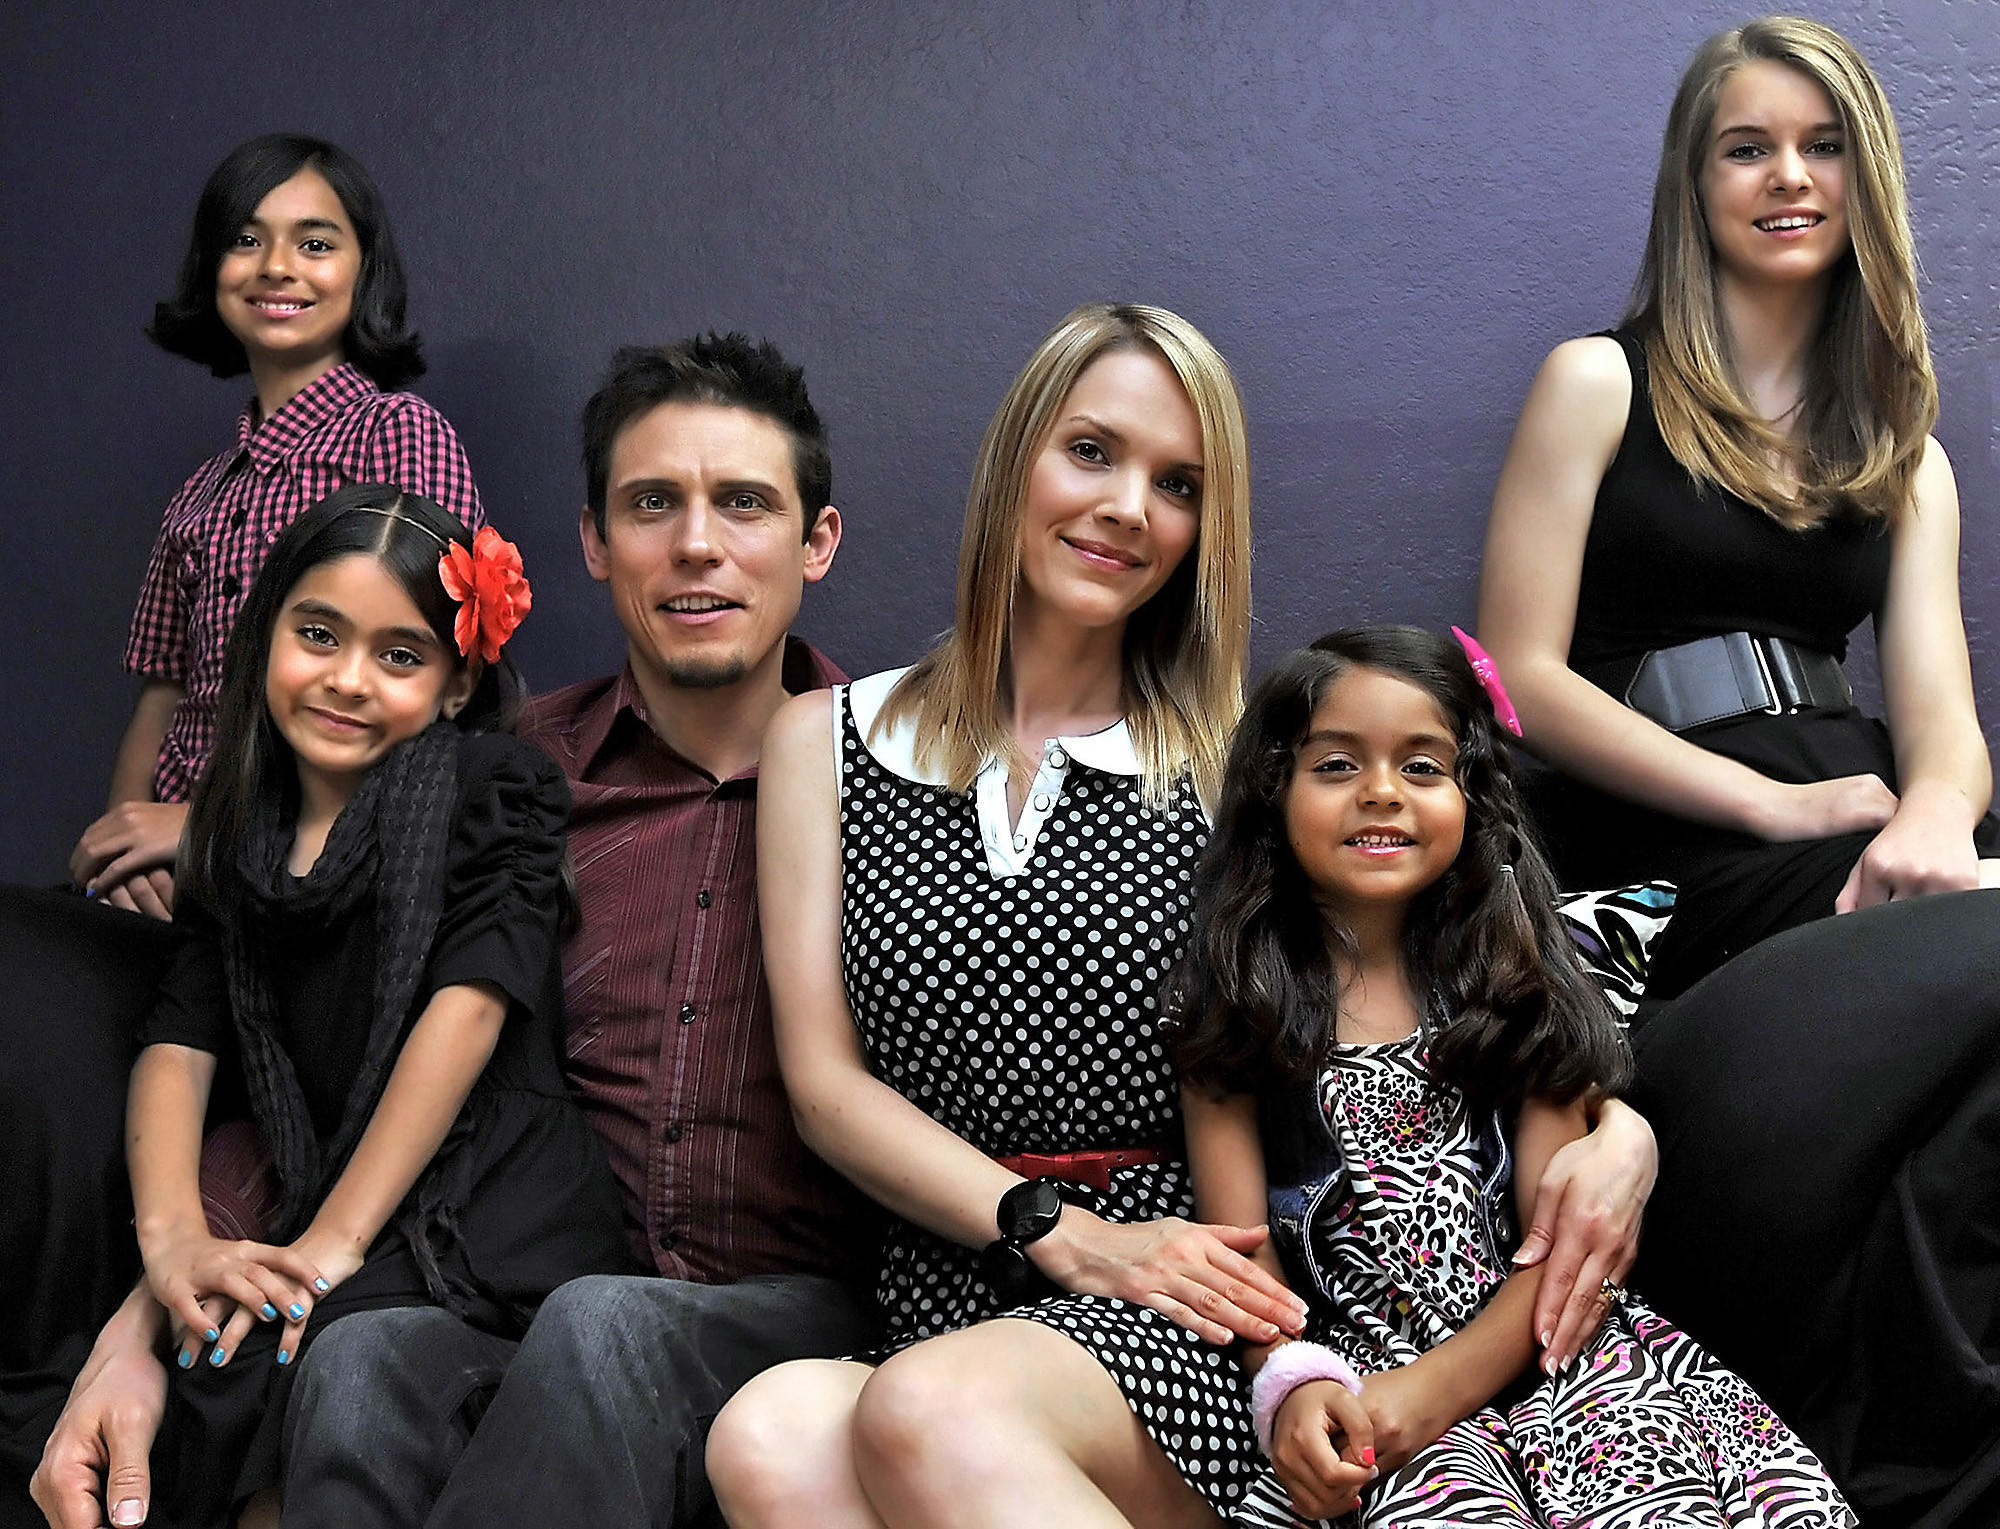 Glendale Community College instructor Ryun Hovind and his wife MeLisa with their adopted children, from left to right: Giselle, 10, Mercedes, 7, Evangeline, 5, and Savannah, 14, at home in Burbank, Thursday, February 20, 2014.